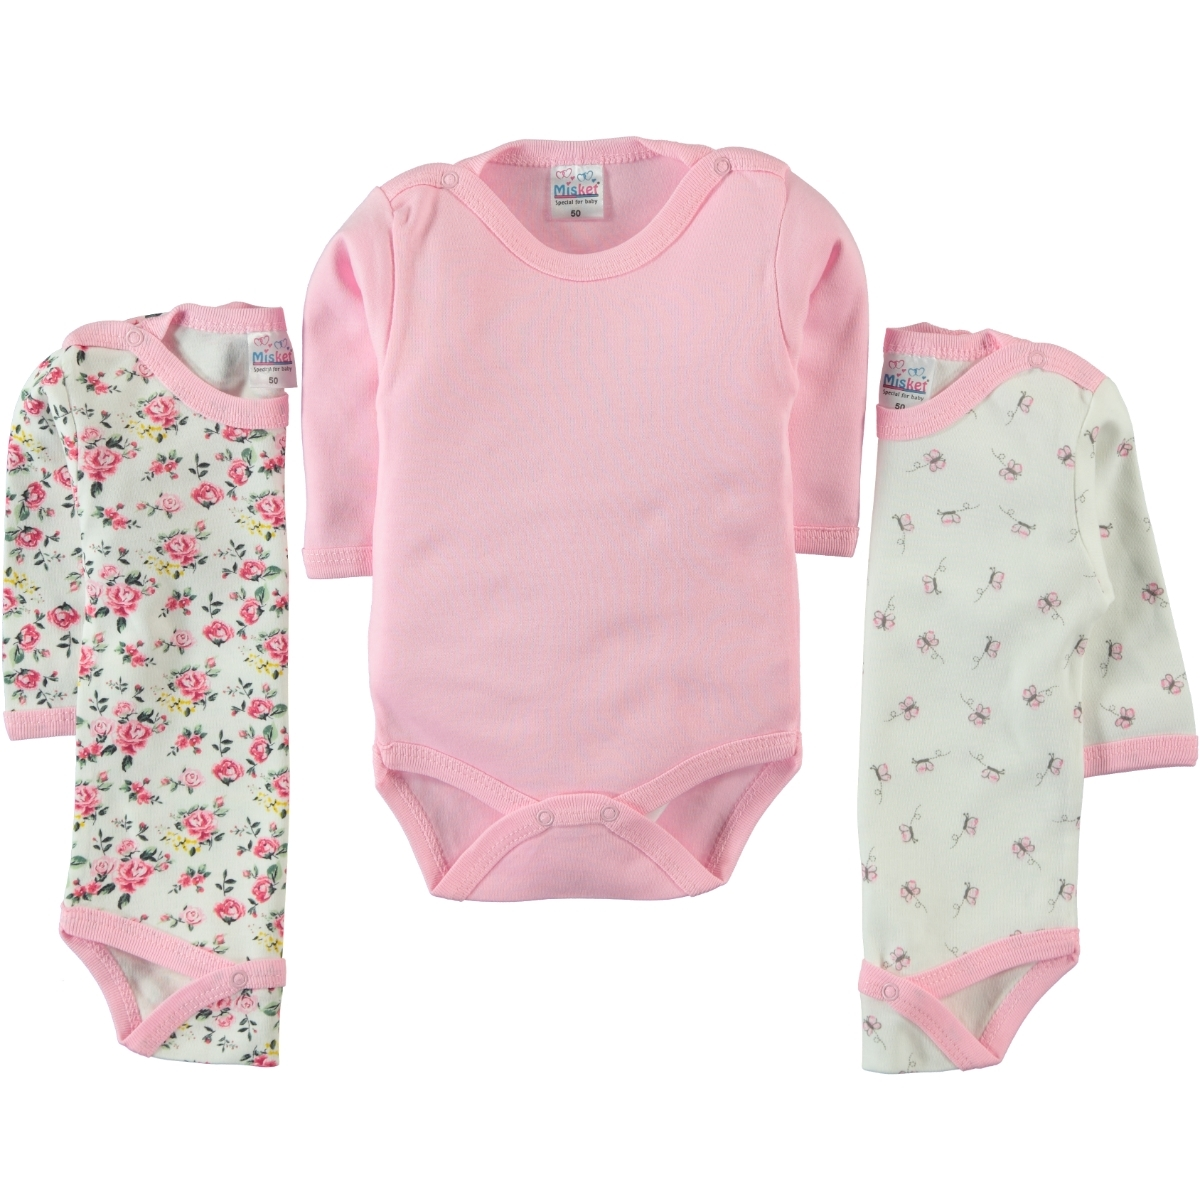 Misket Baby girl Bodysuit with snaps 3-0-12 months-Pink